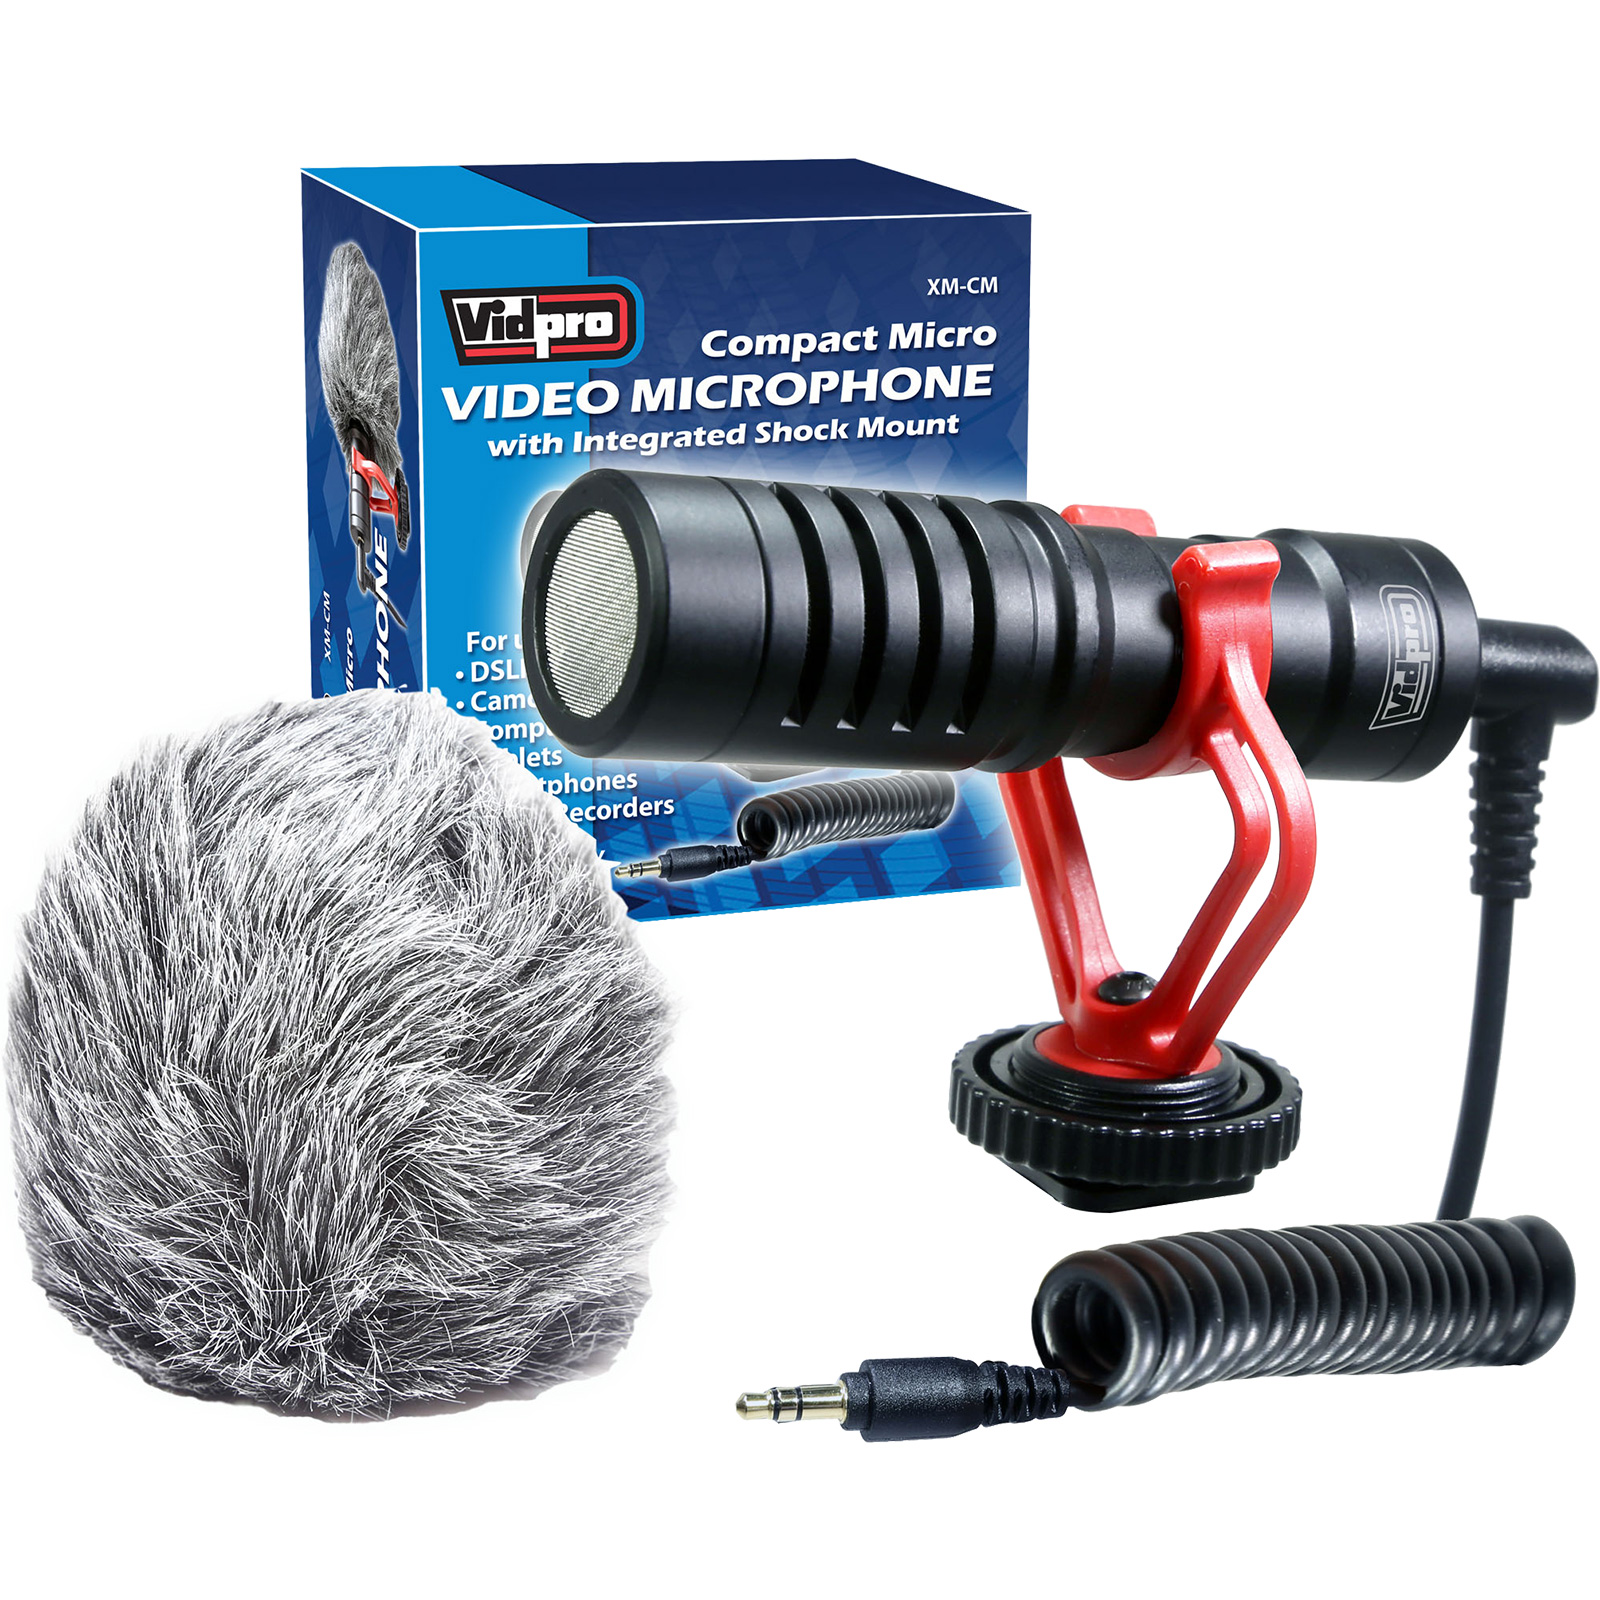 Vidpro XM-CM Compact Micro Video Microphone with Integrated Shock Mount for DSLR Cameras, Camcorders & Smartphones